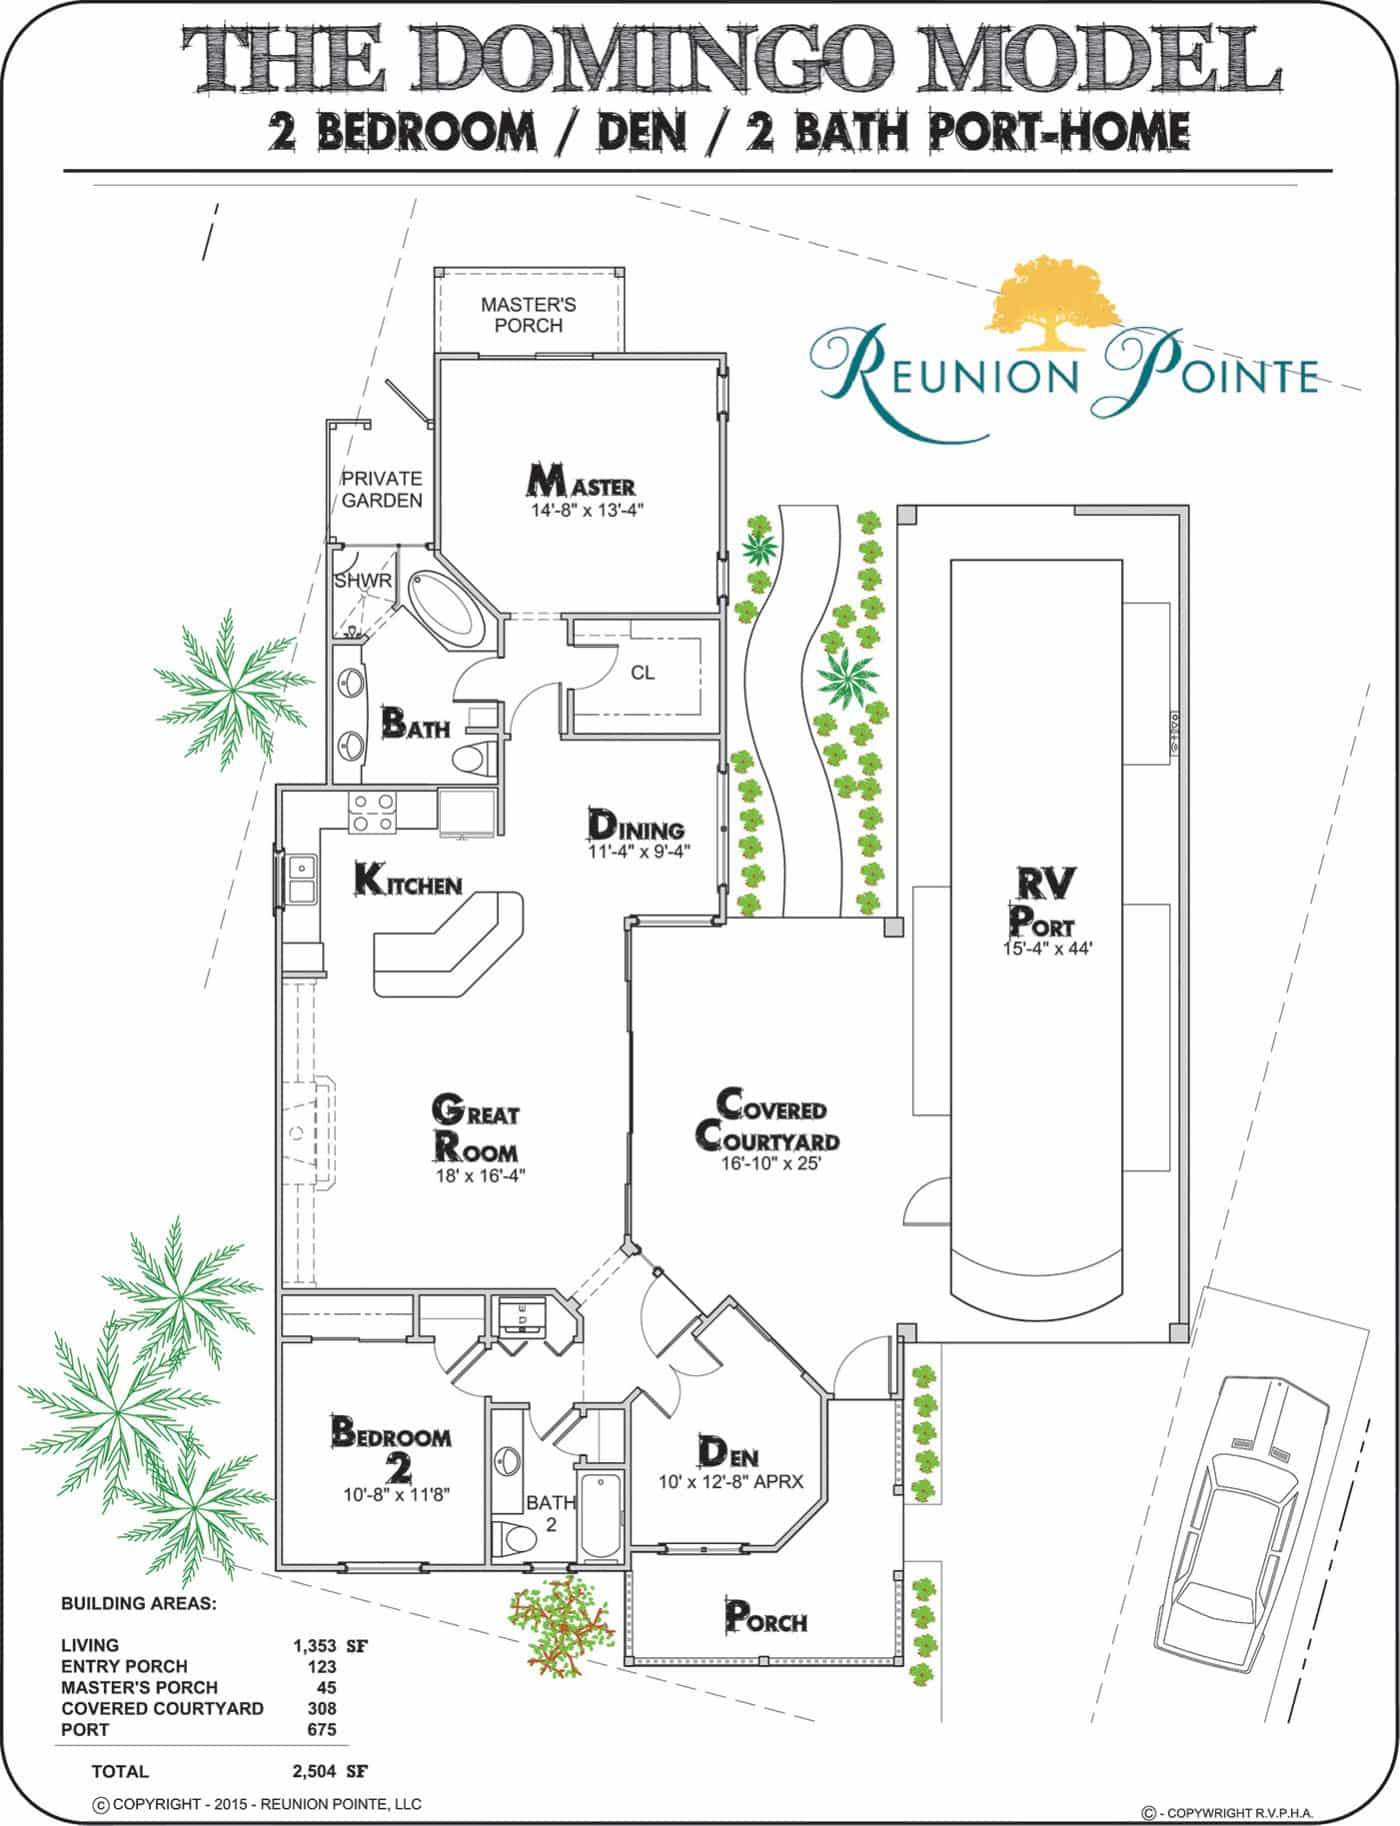 Jamaica RV Port-Home Model Floorplan